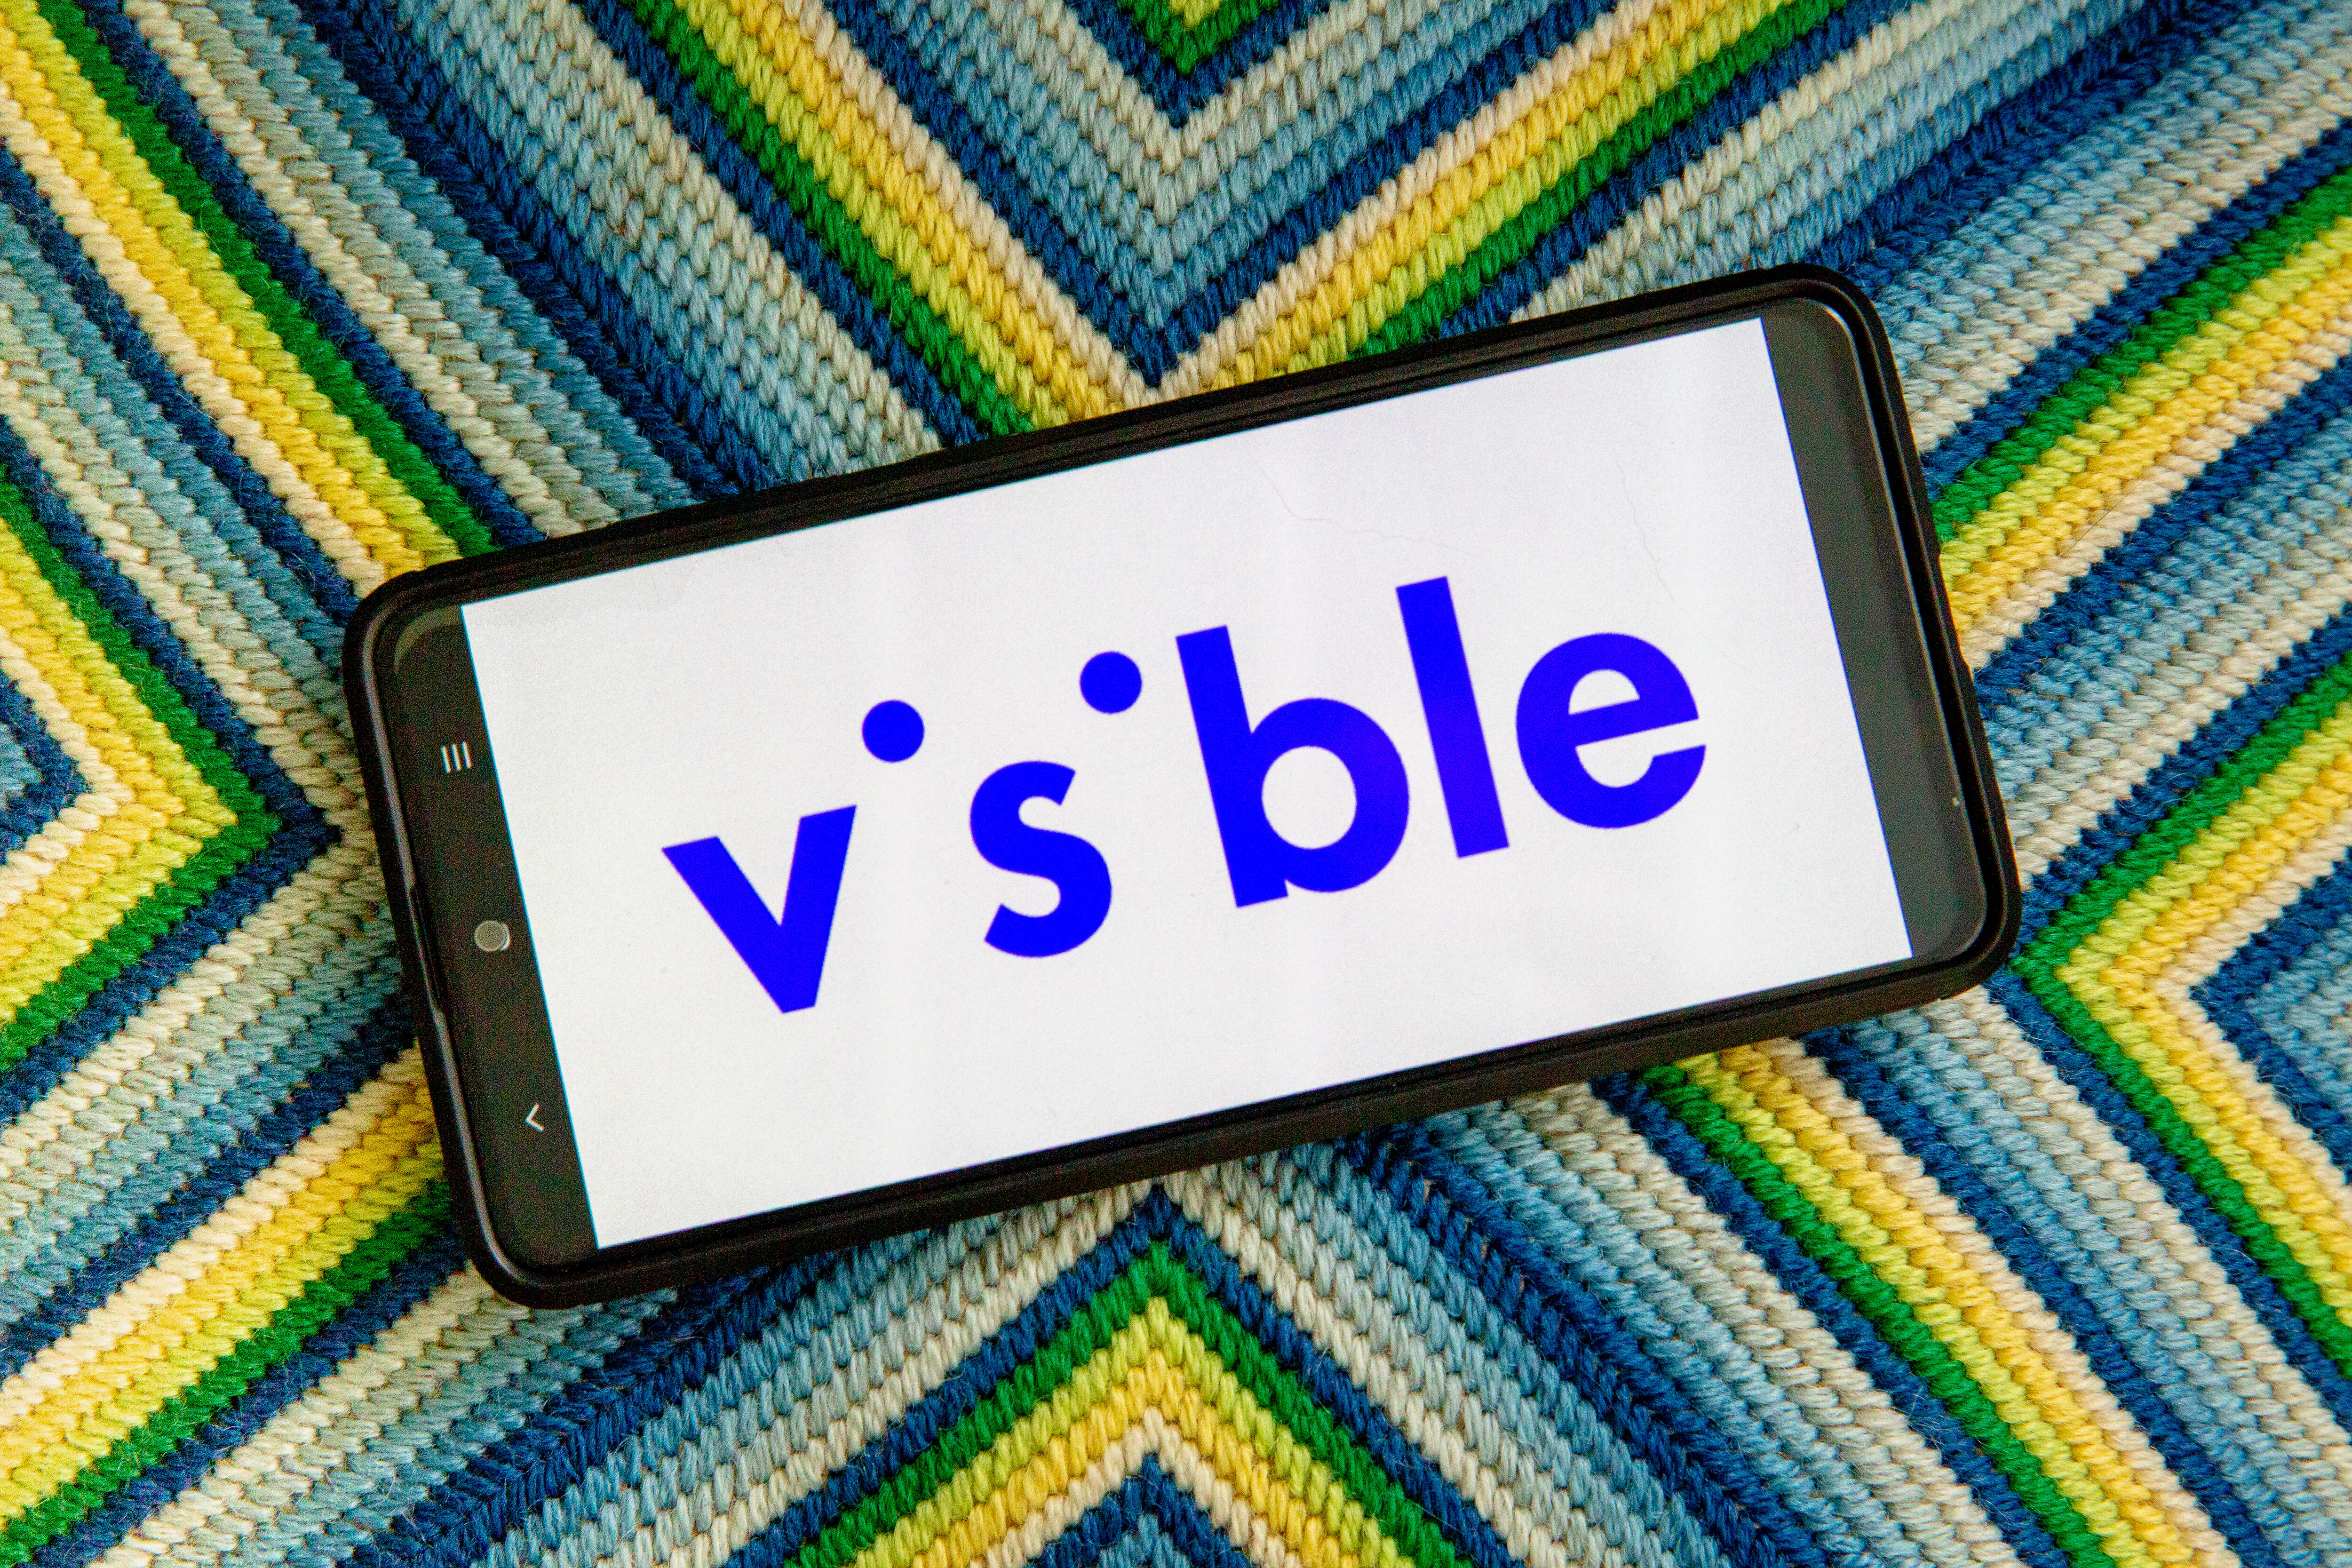 visible-wireless-mobile-phone-service-2021-cnet-review17